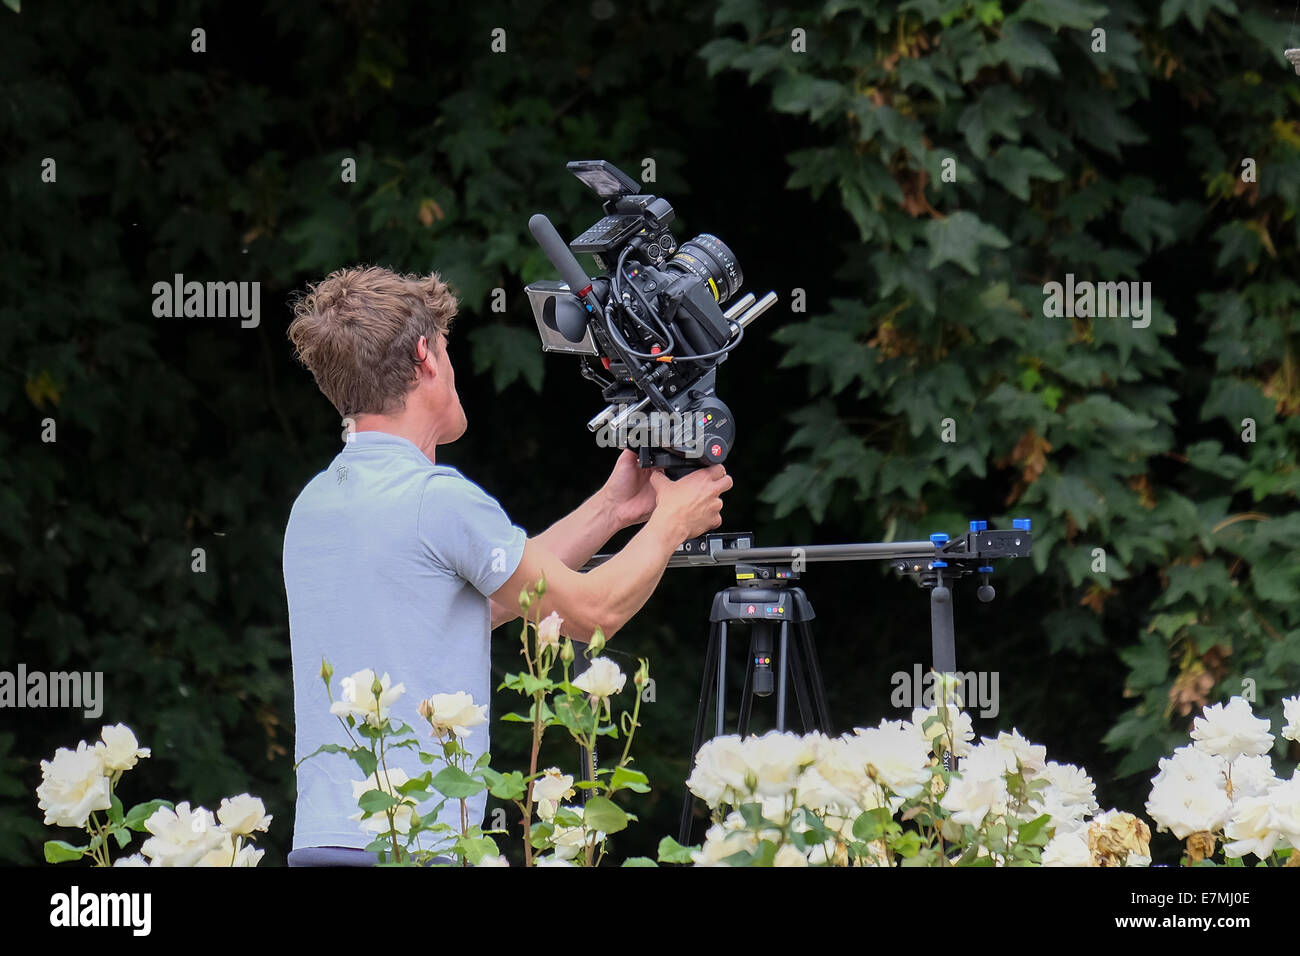 Cameraman filming in garden area with professional video equipment - Stock Image